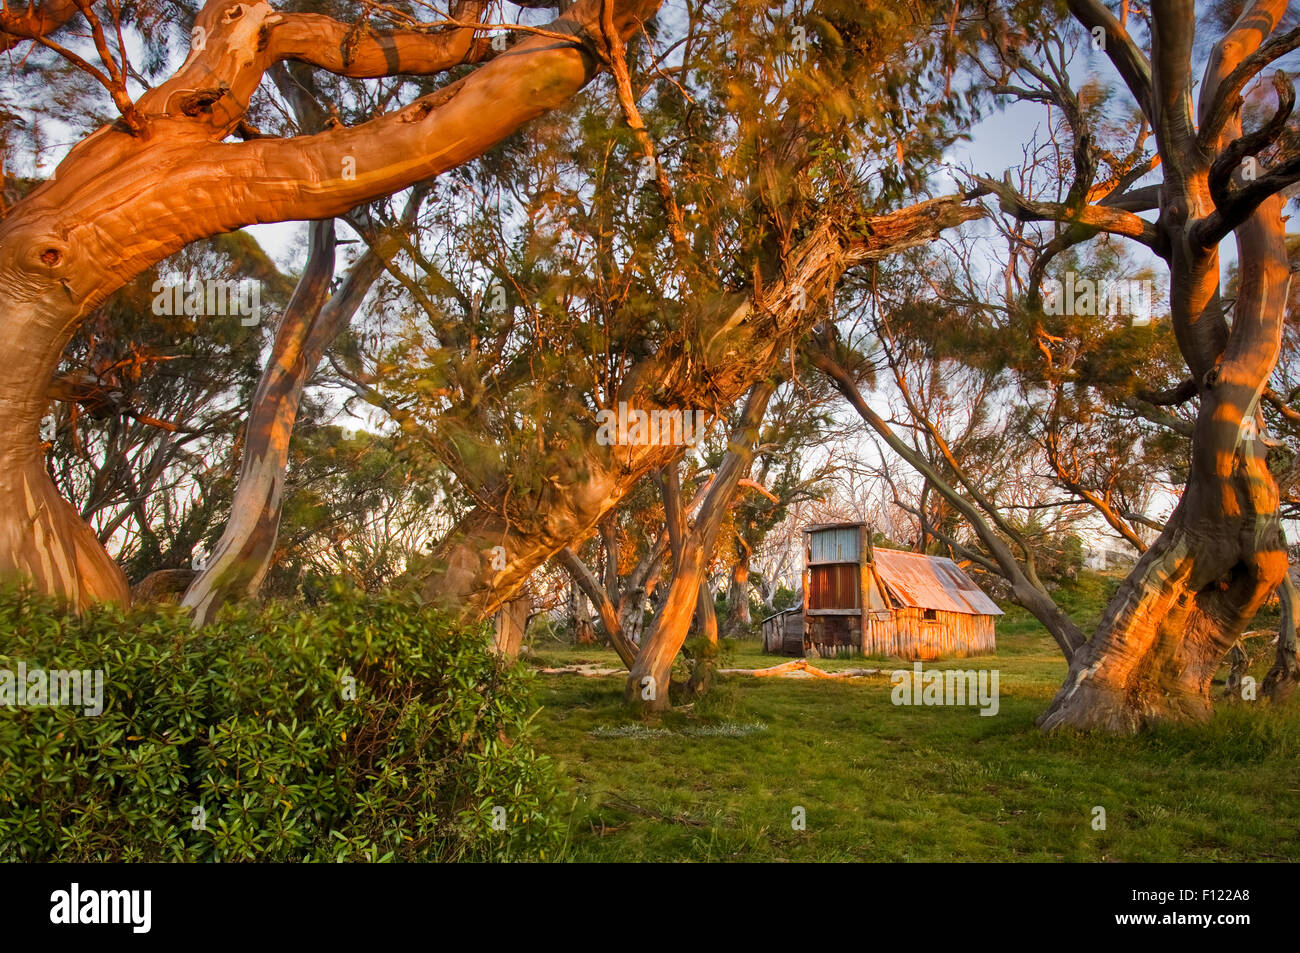 Wallaces Hut in early morning light. - Stock Image